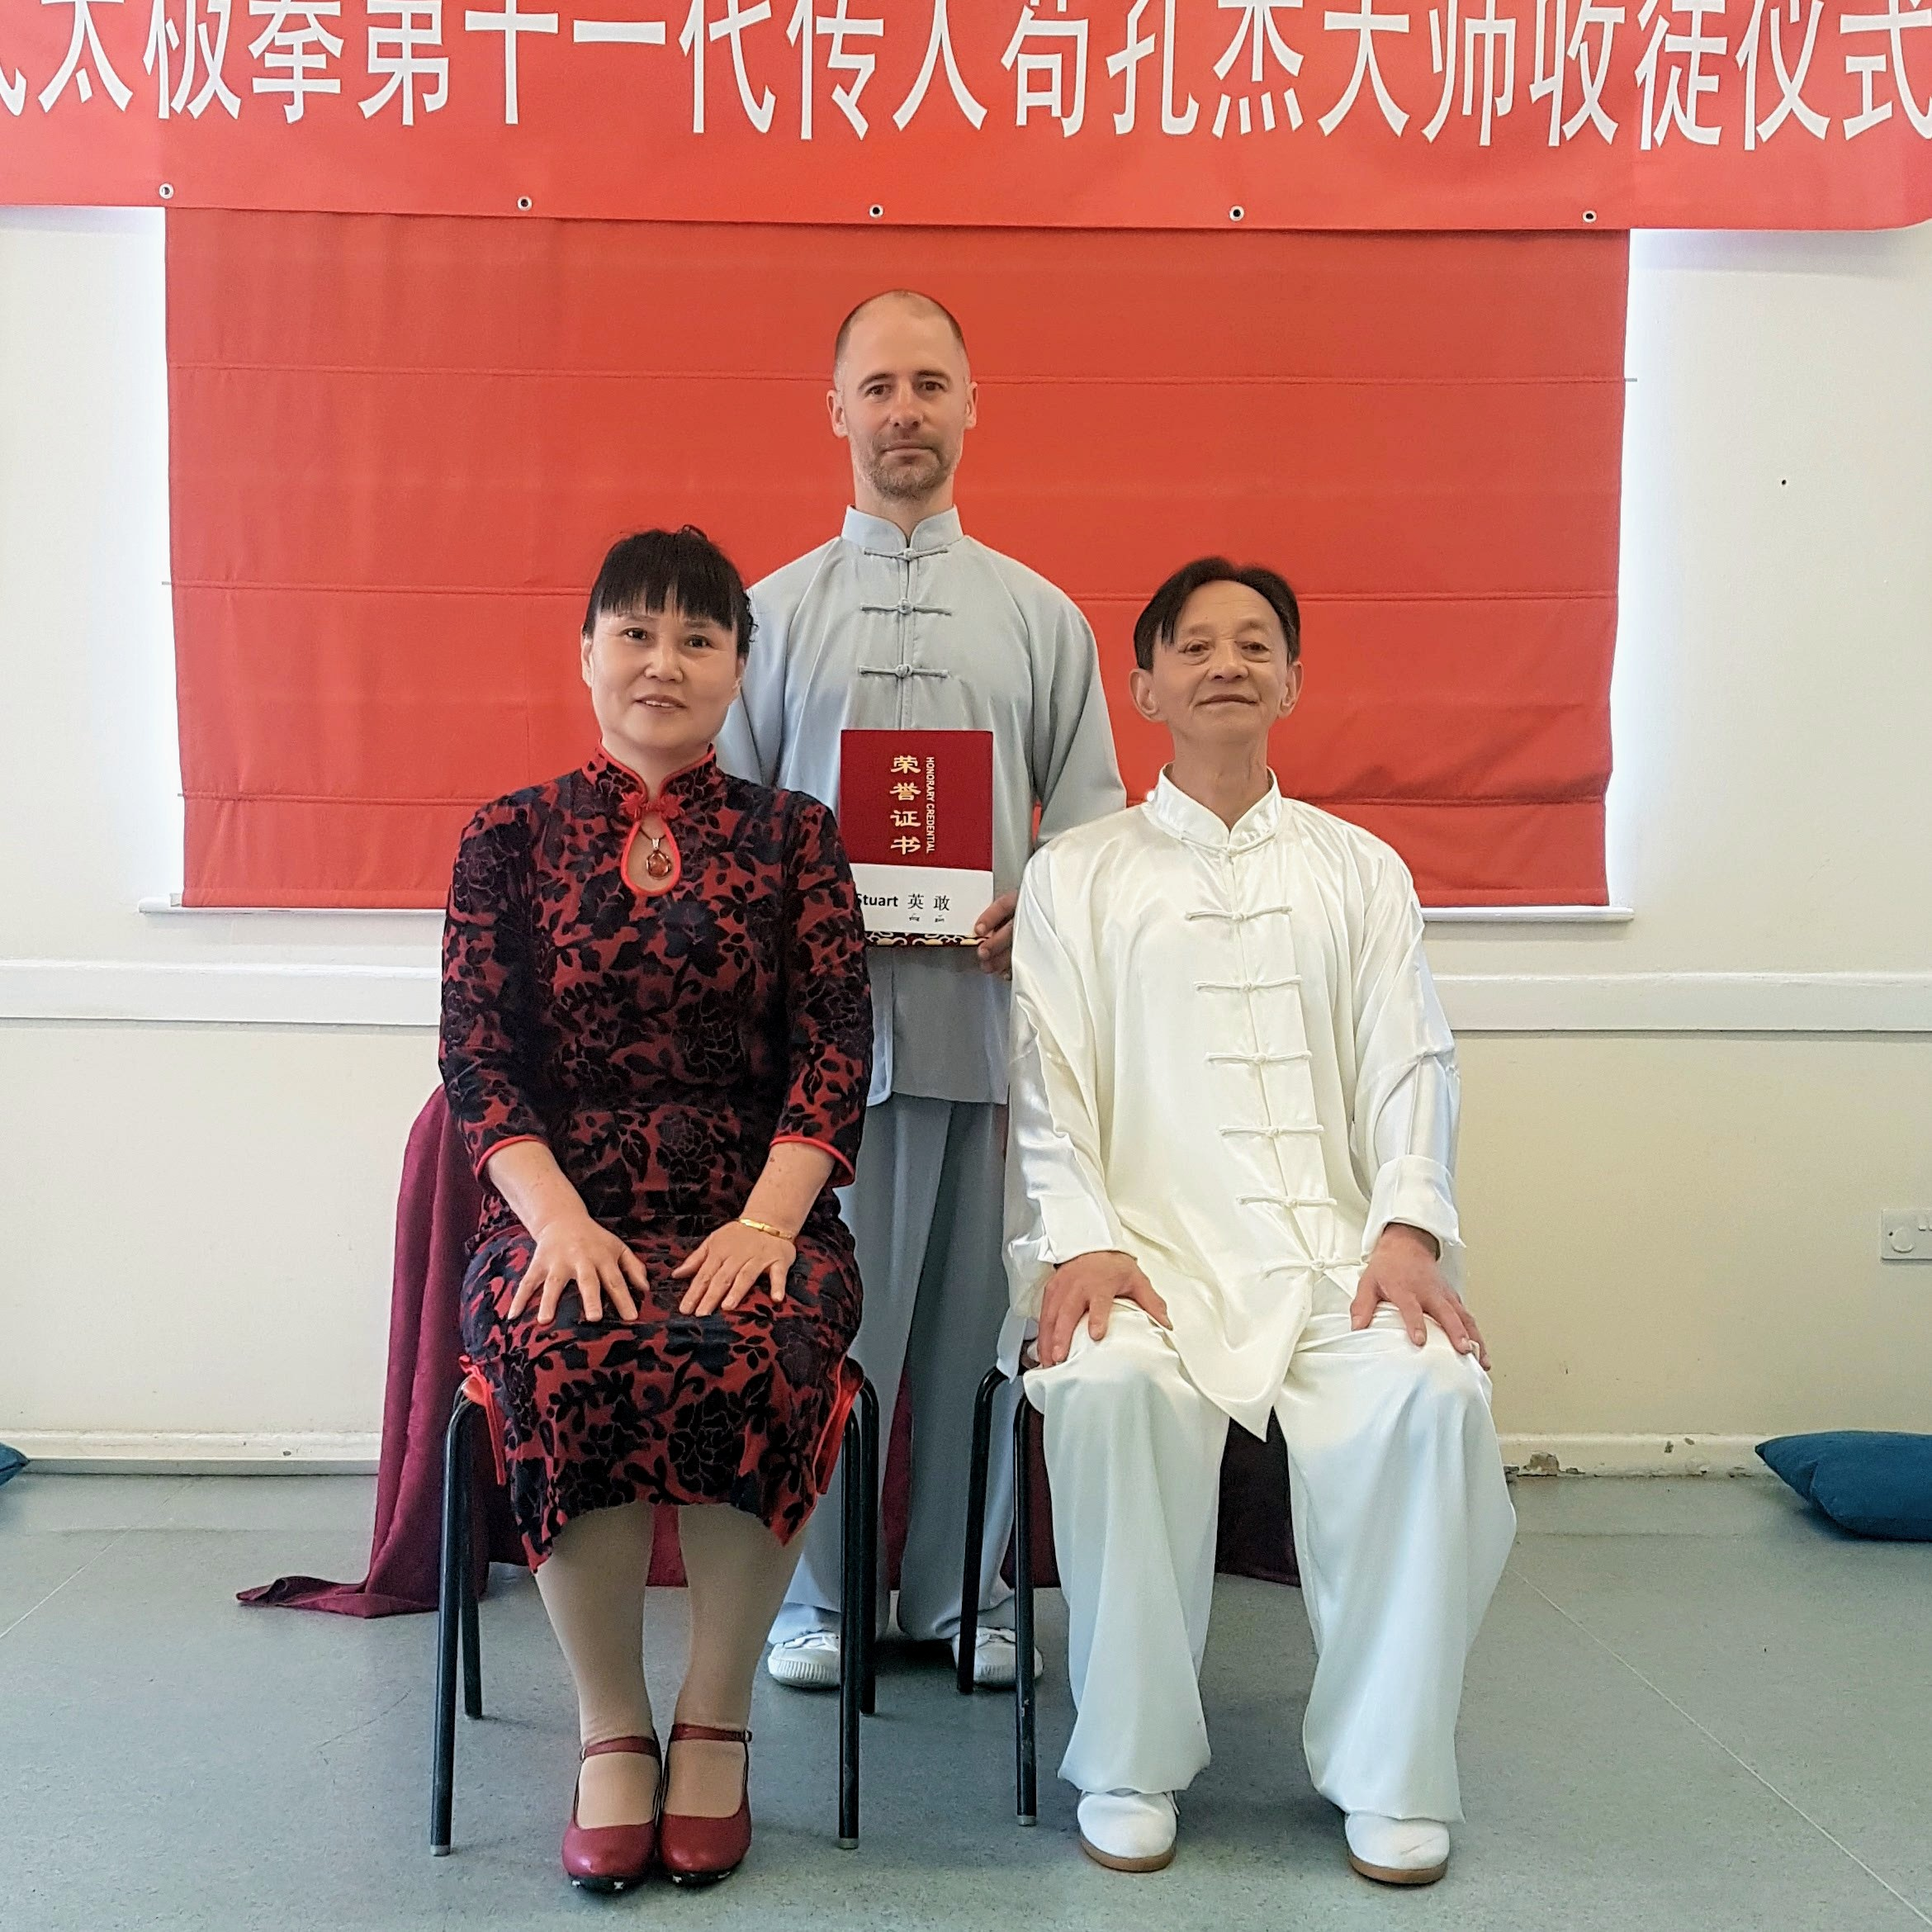 My bai shi ceromany with Grandmaster Gou and his wife in March 2017. I was given the Chinese name of Yin Gan.